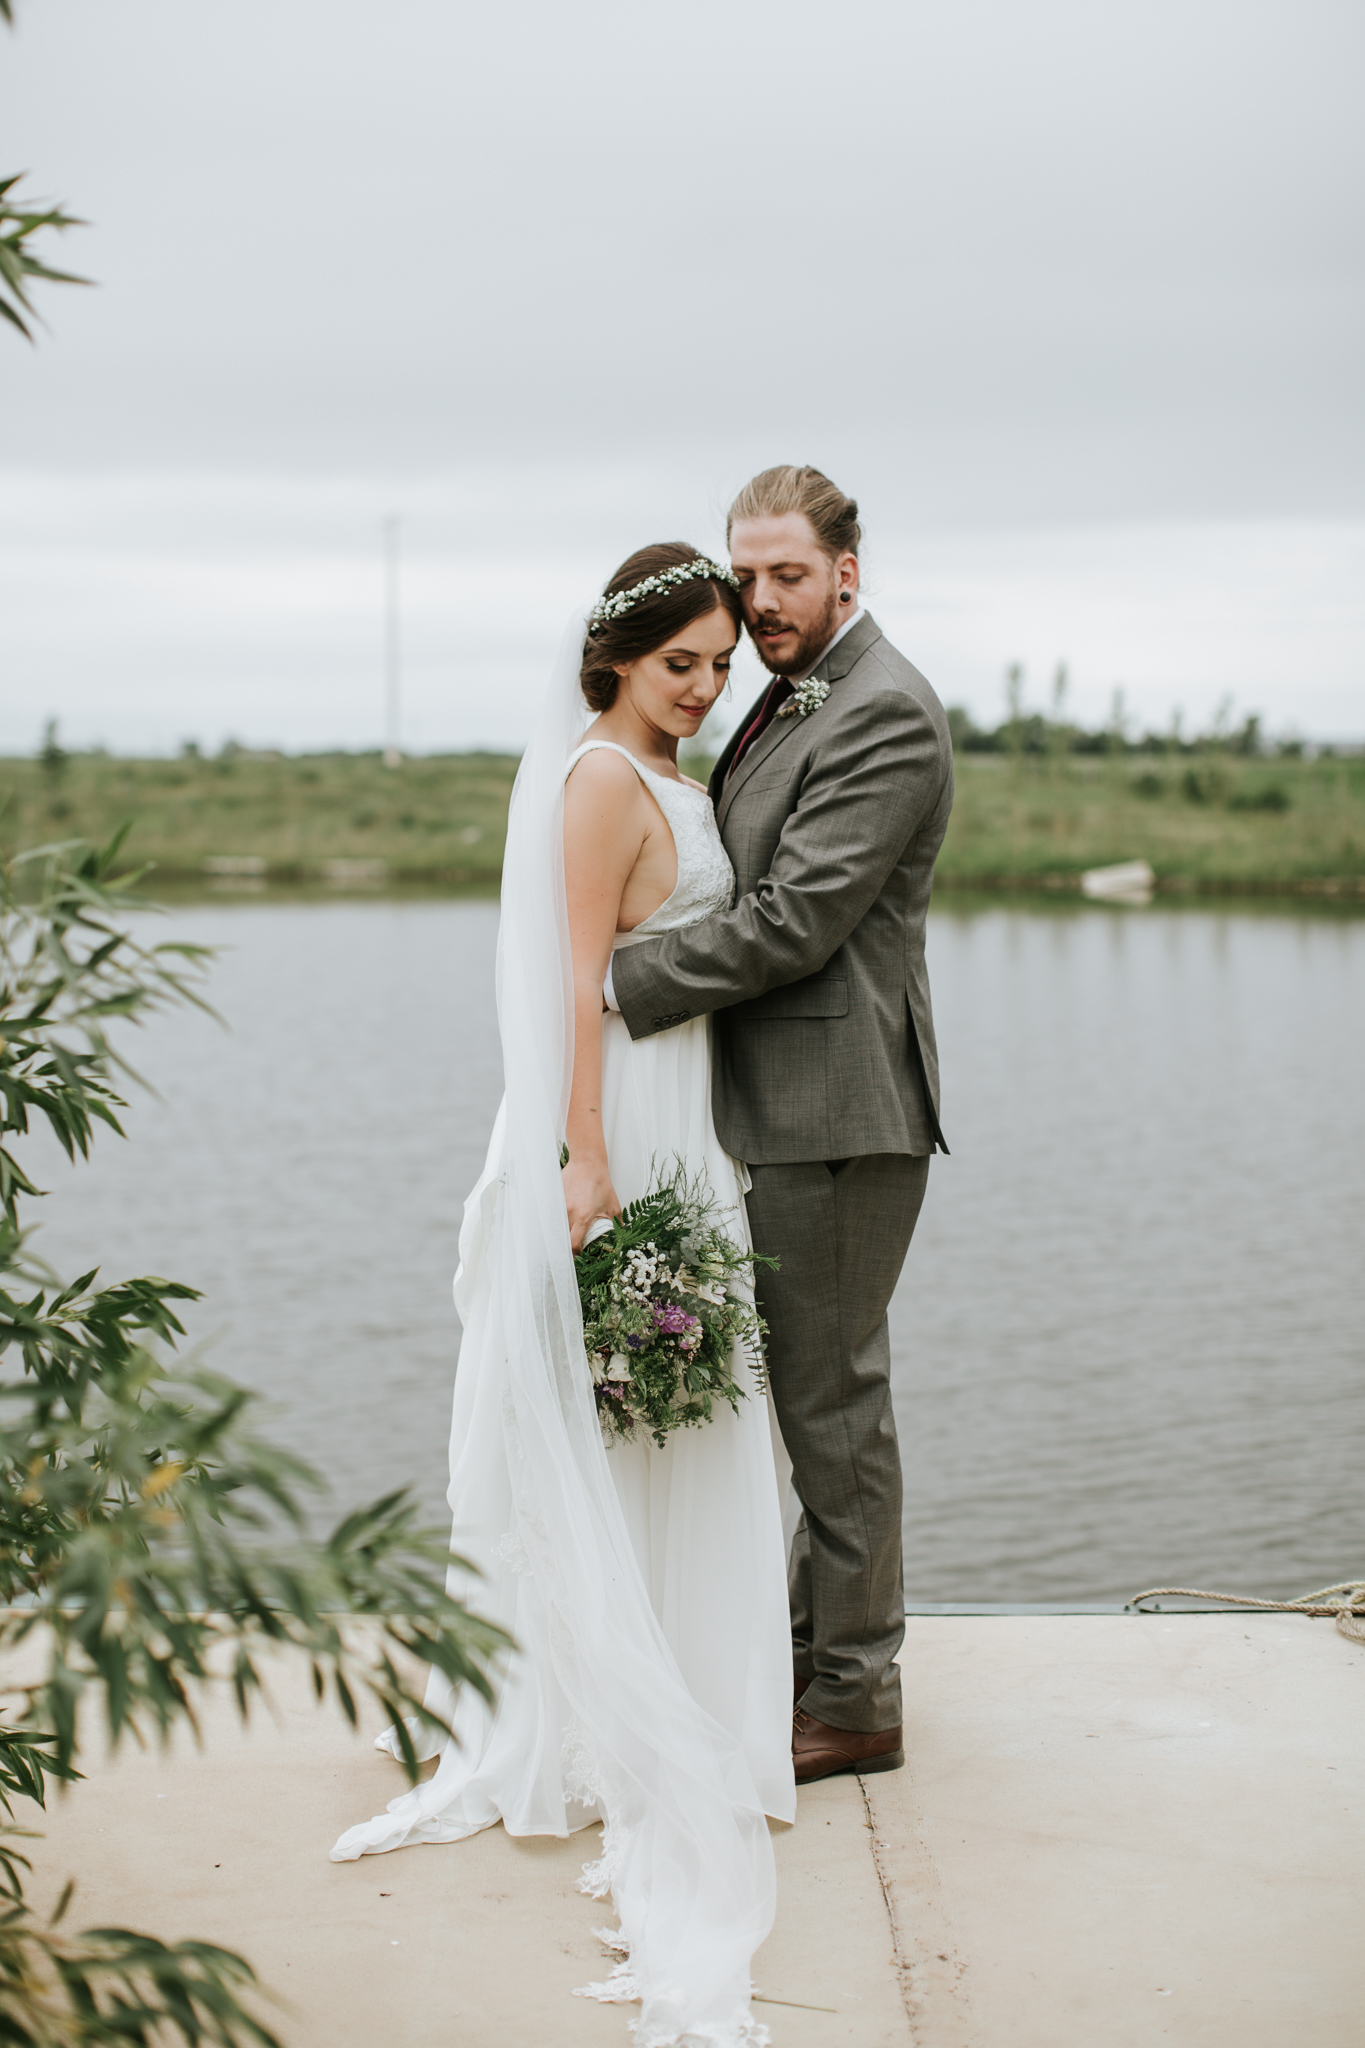 Bride and Groom with bouquet and boutonnières